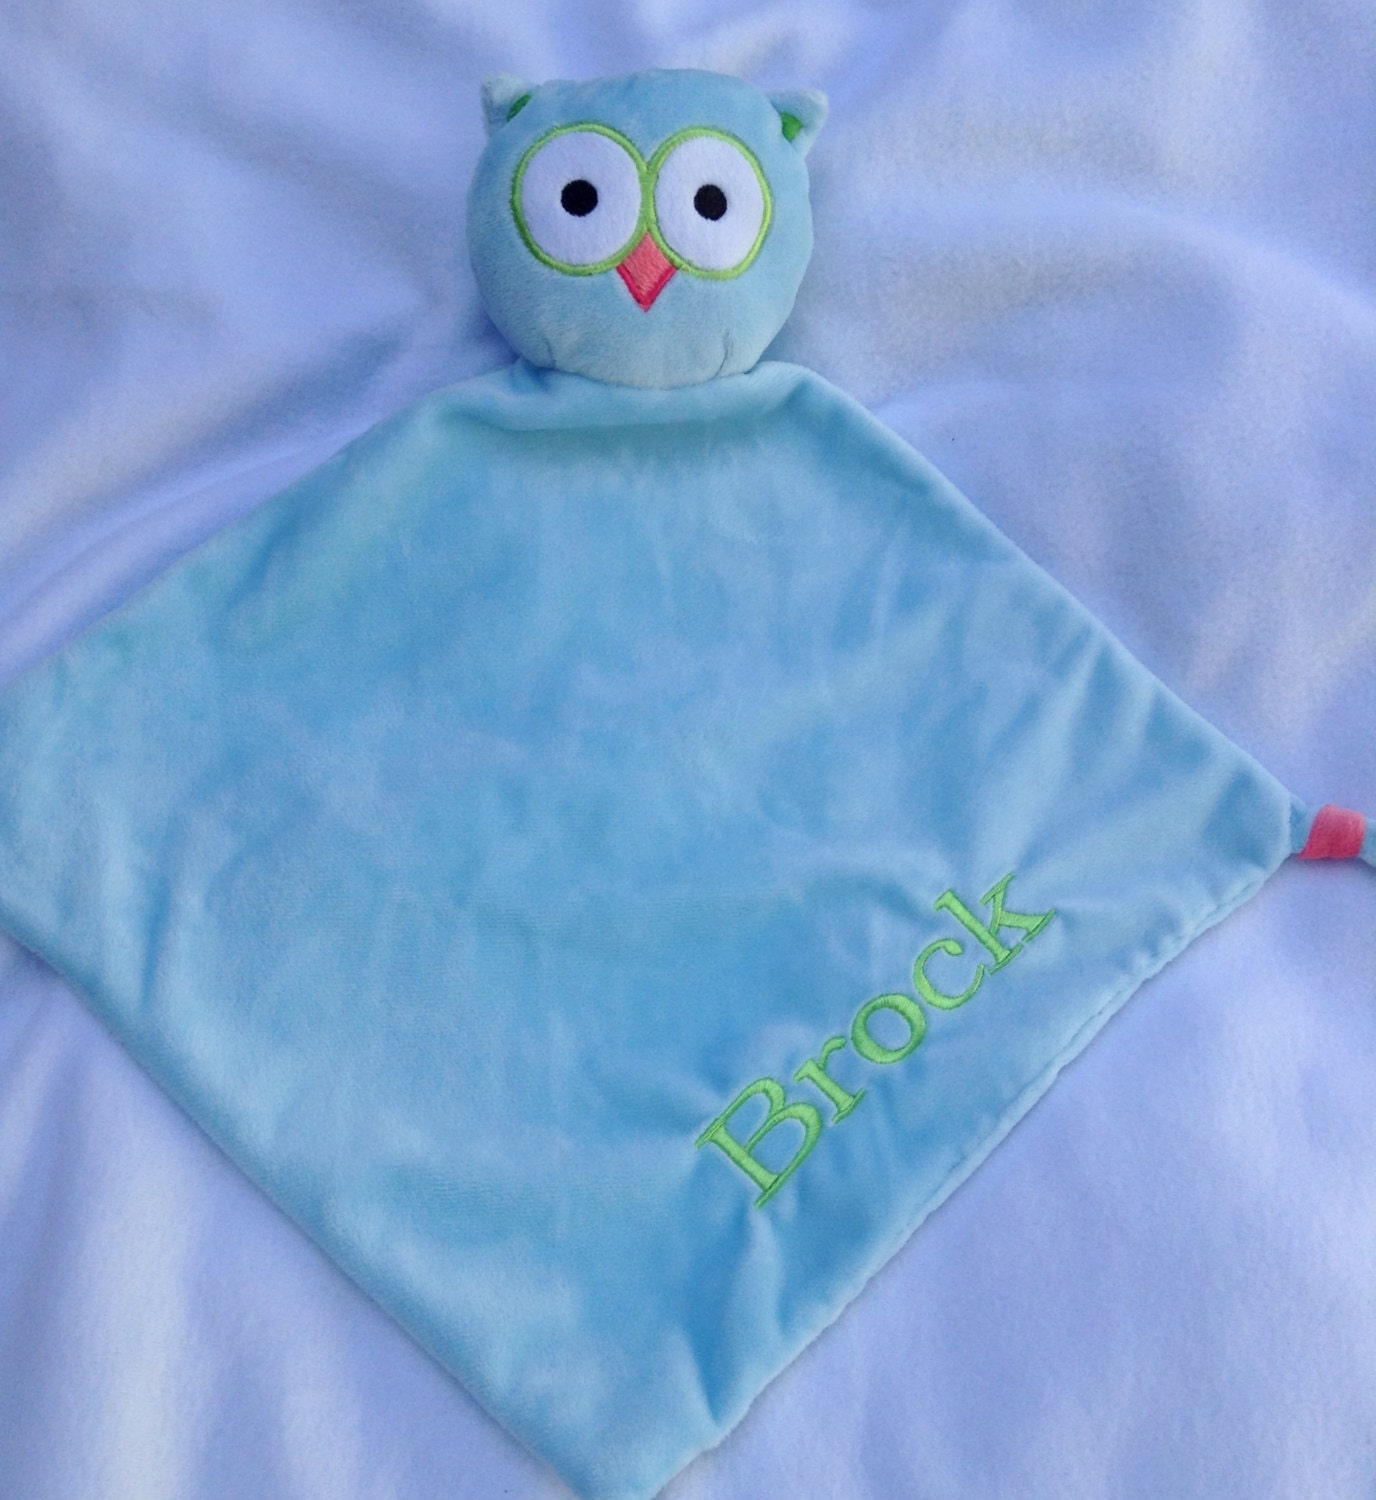 Baby Gift Monogram : Monogrammed baby gift personalized owl security blanket